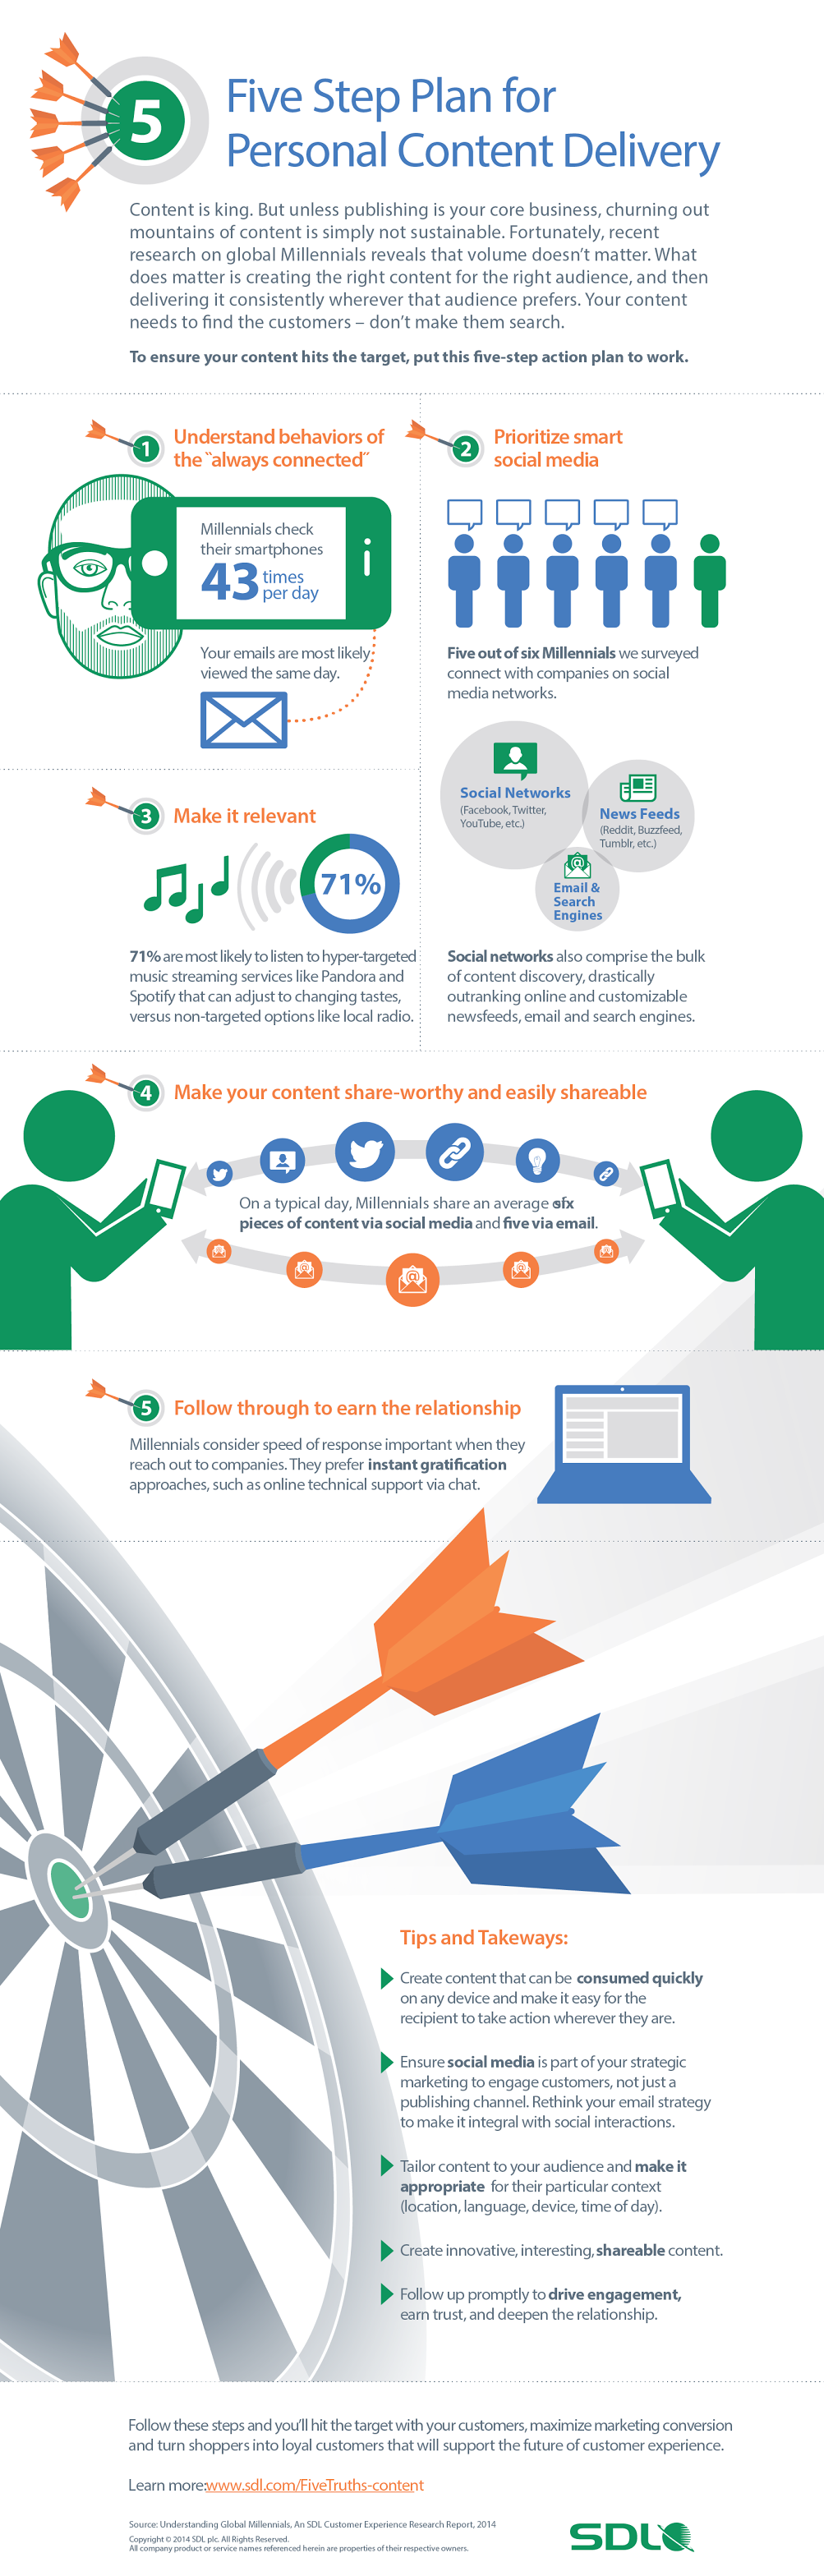 Five Step Plan for Personal Content Delivery - #infographic #contentmarketing #contentstrategy